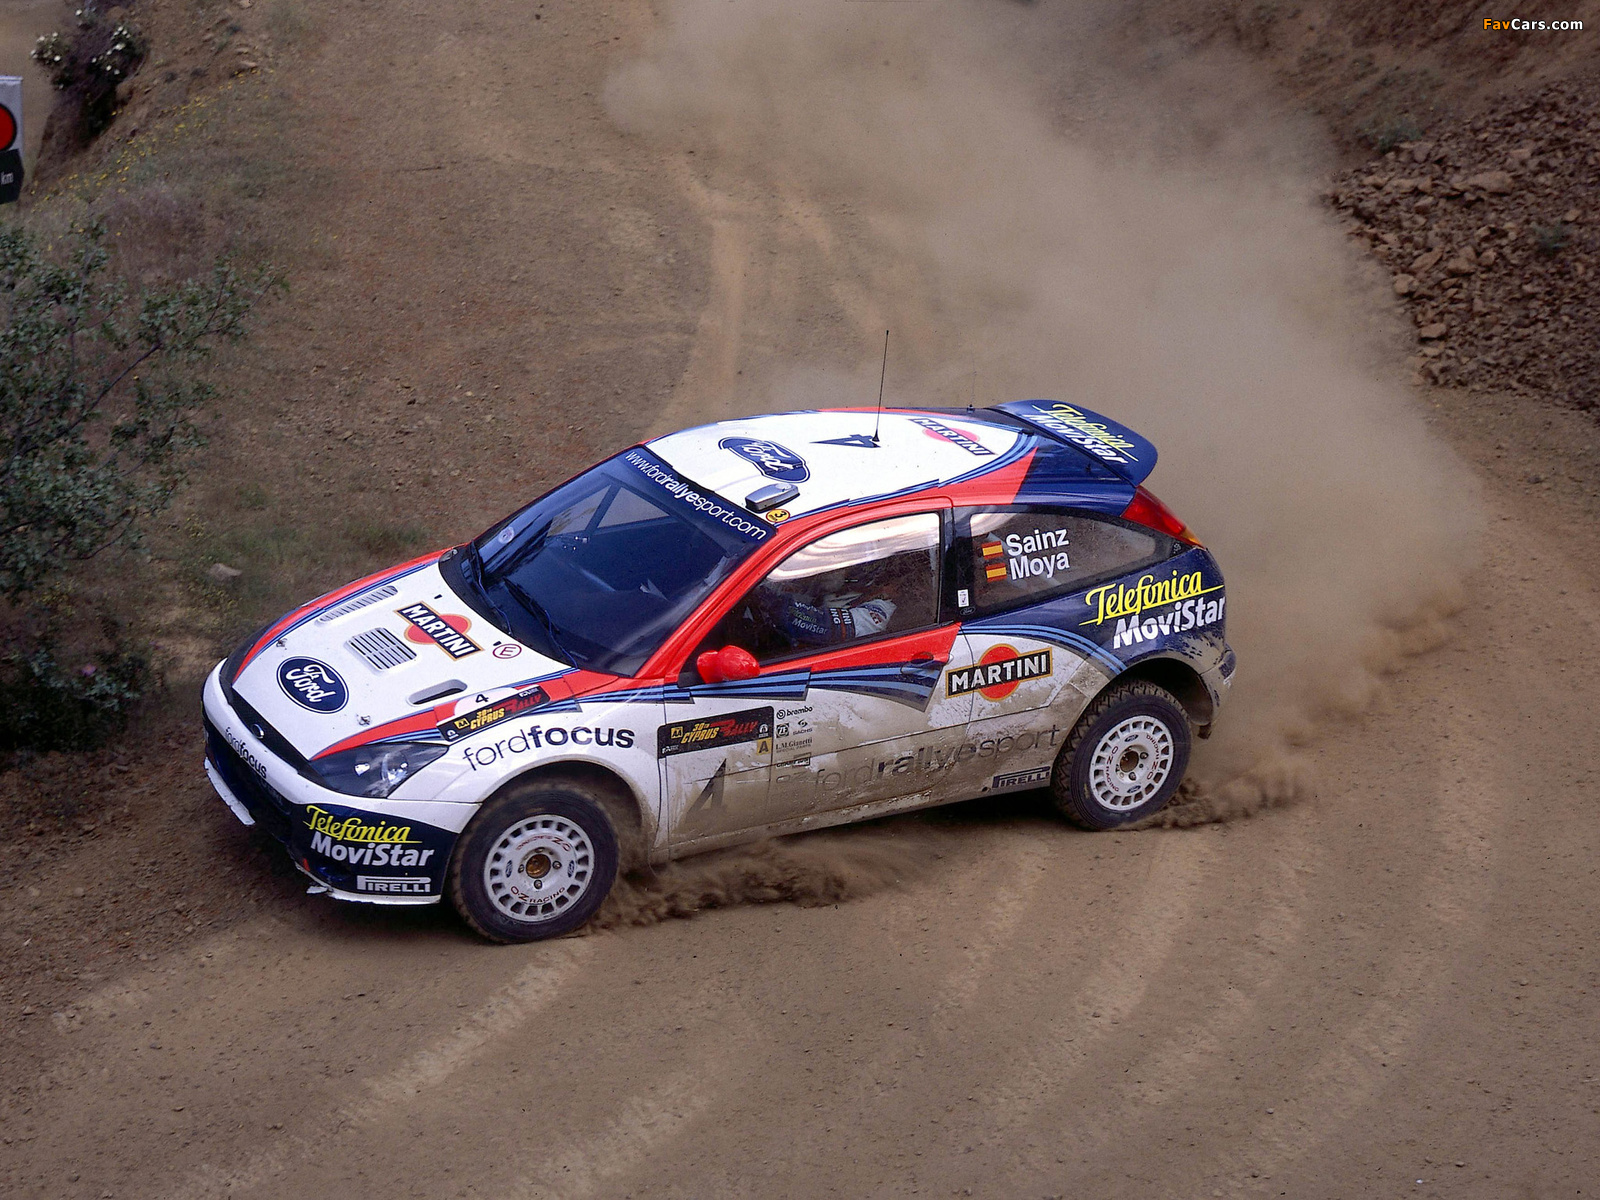 Ford Focus Rs Ford Focus WRC 1999–2000 pictures (1600x1200)